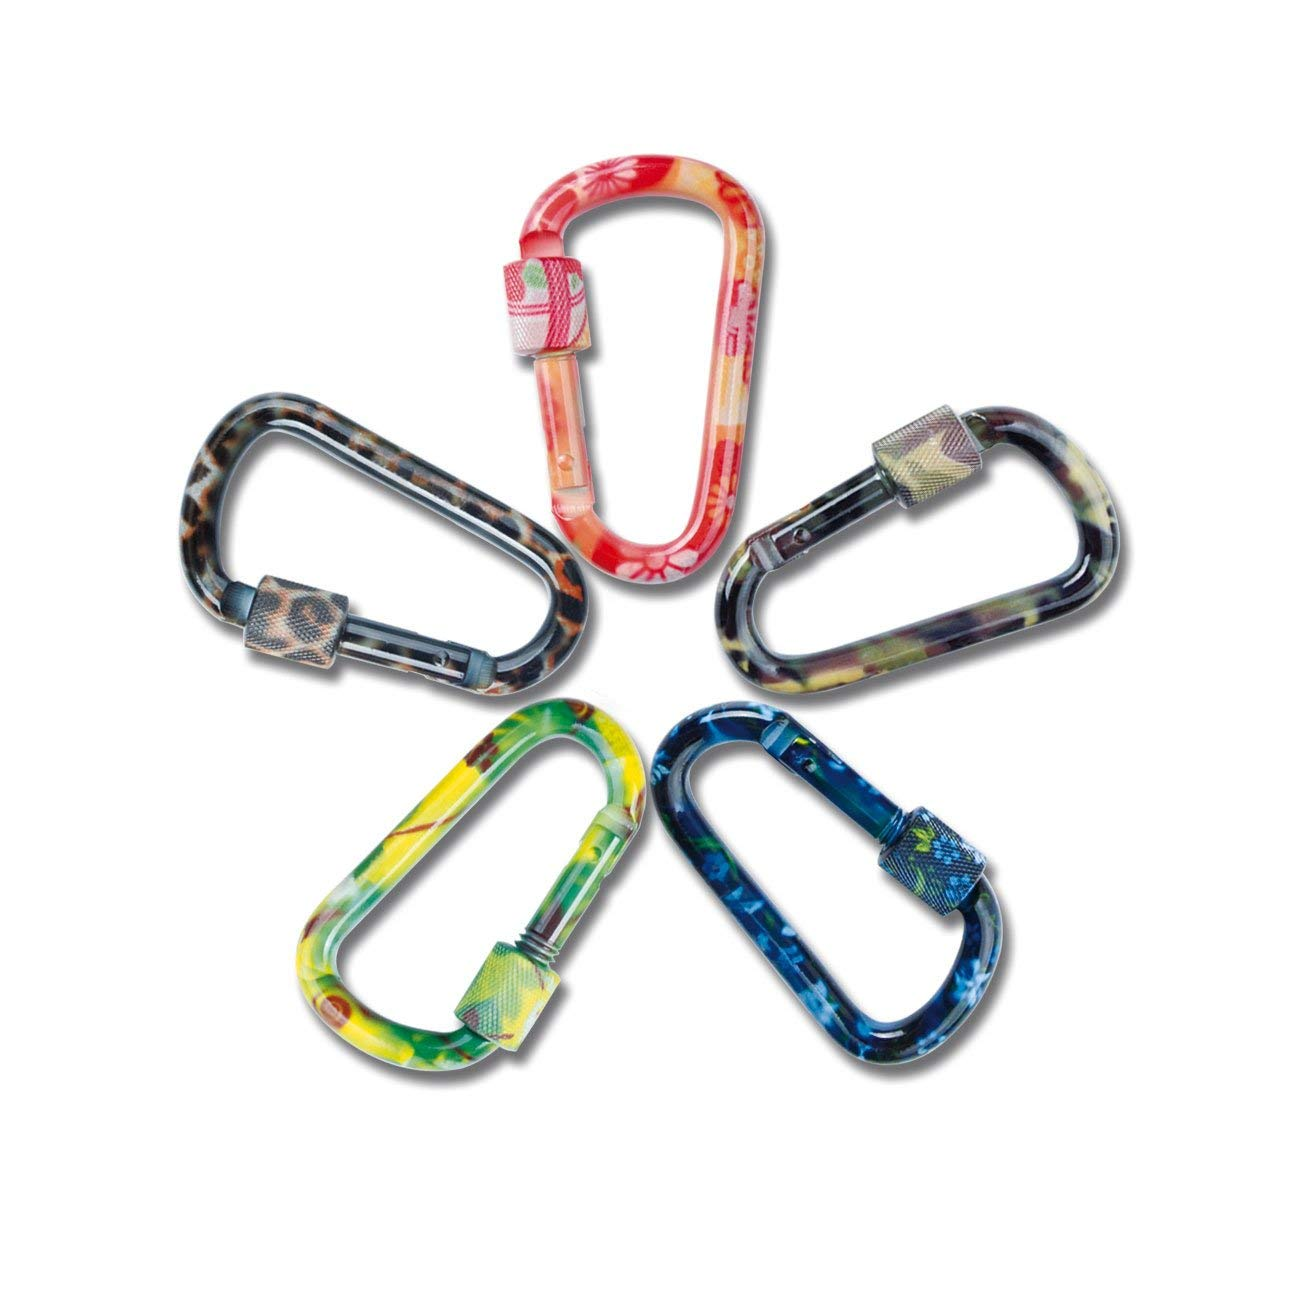 Gear Aluminum Alloy D Shape Buckle Pack,Keychain Clip, Backpack Carabiner,Spring Snap Keychain Clip Hook Screw Gate Buckle Ideal for Camping, Hiking, Fishing